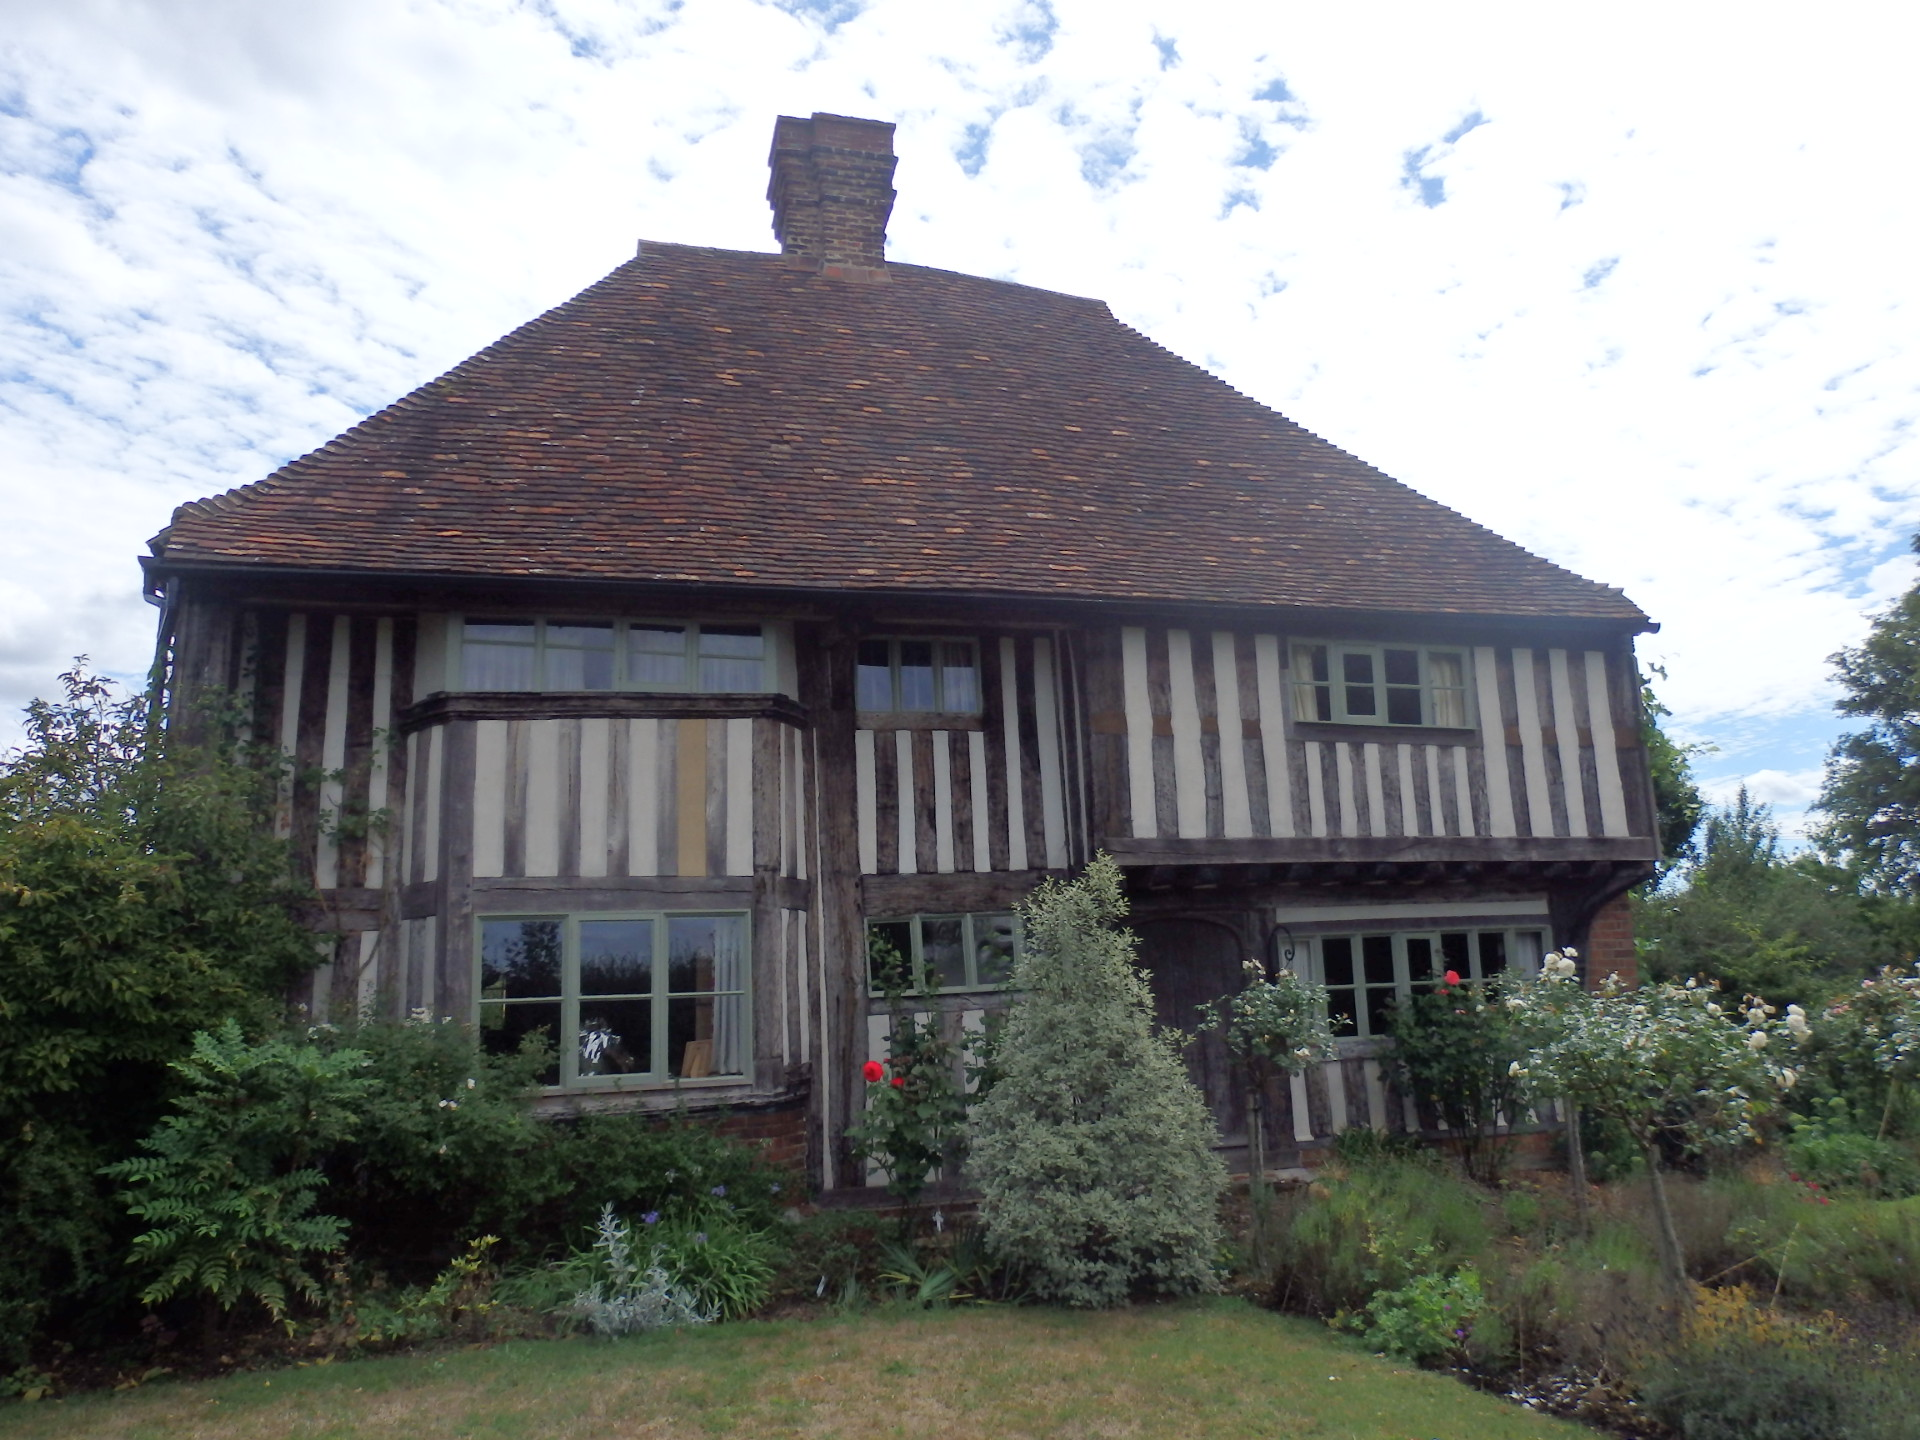 A 1490 Wealden Hall House